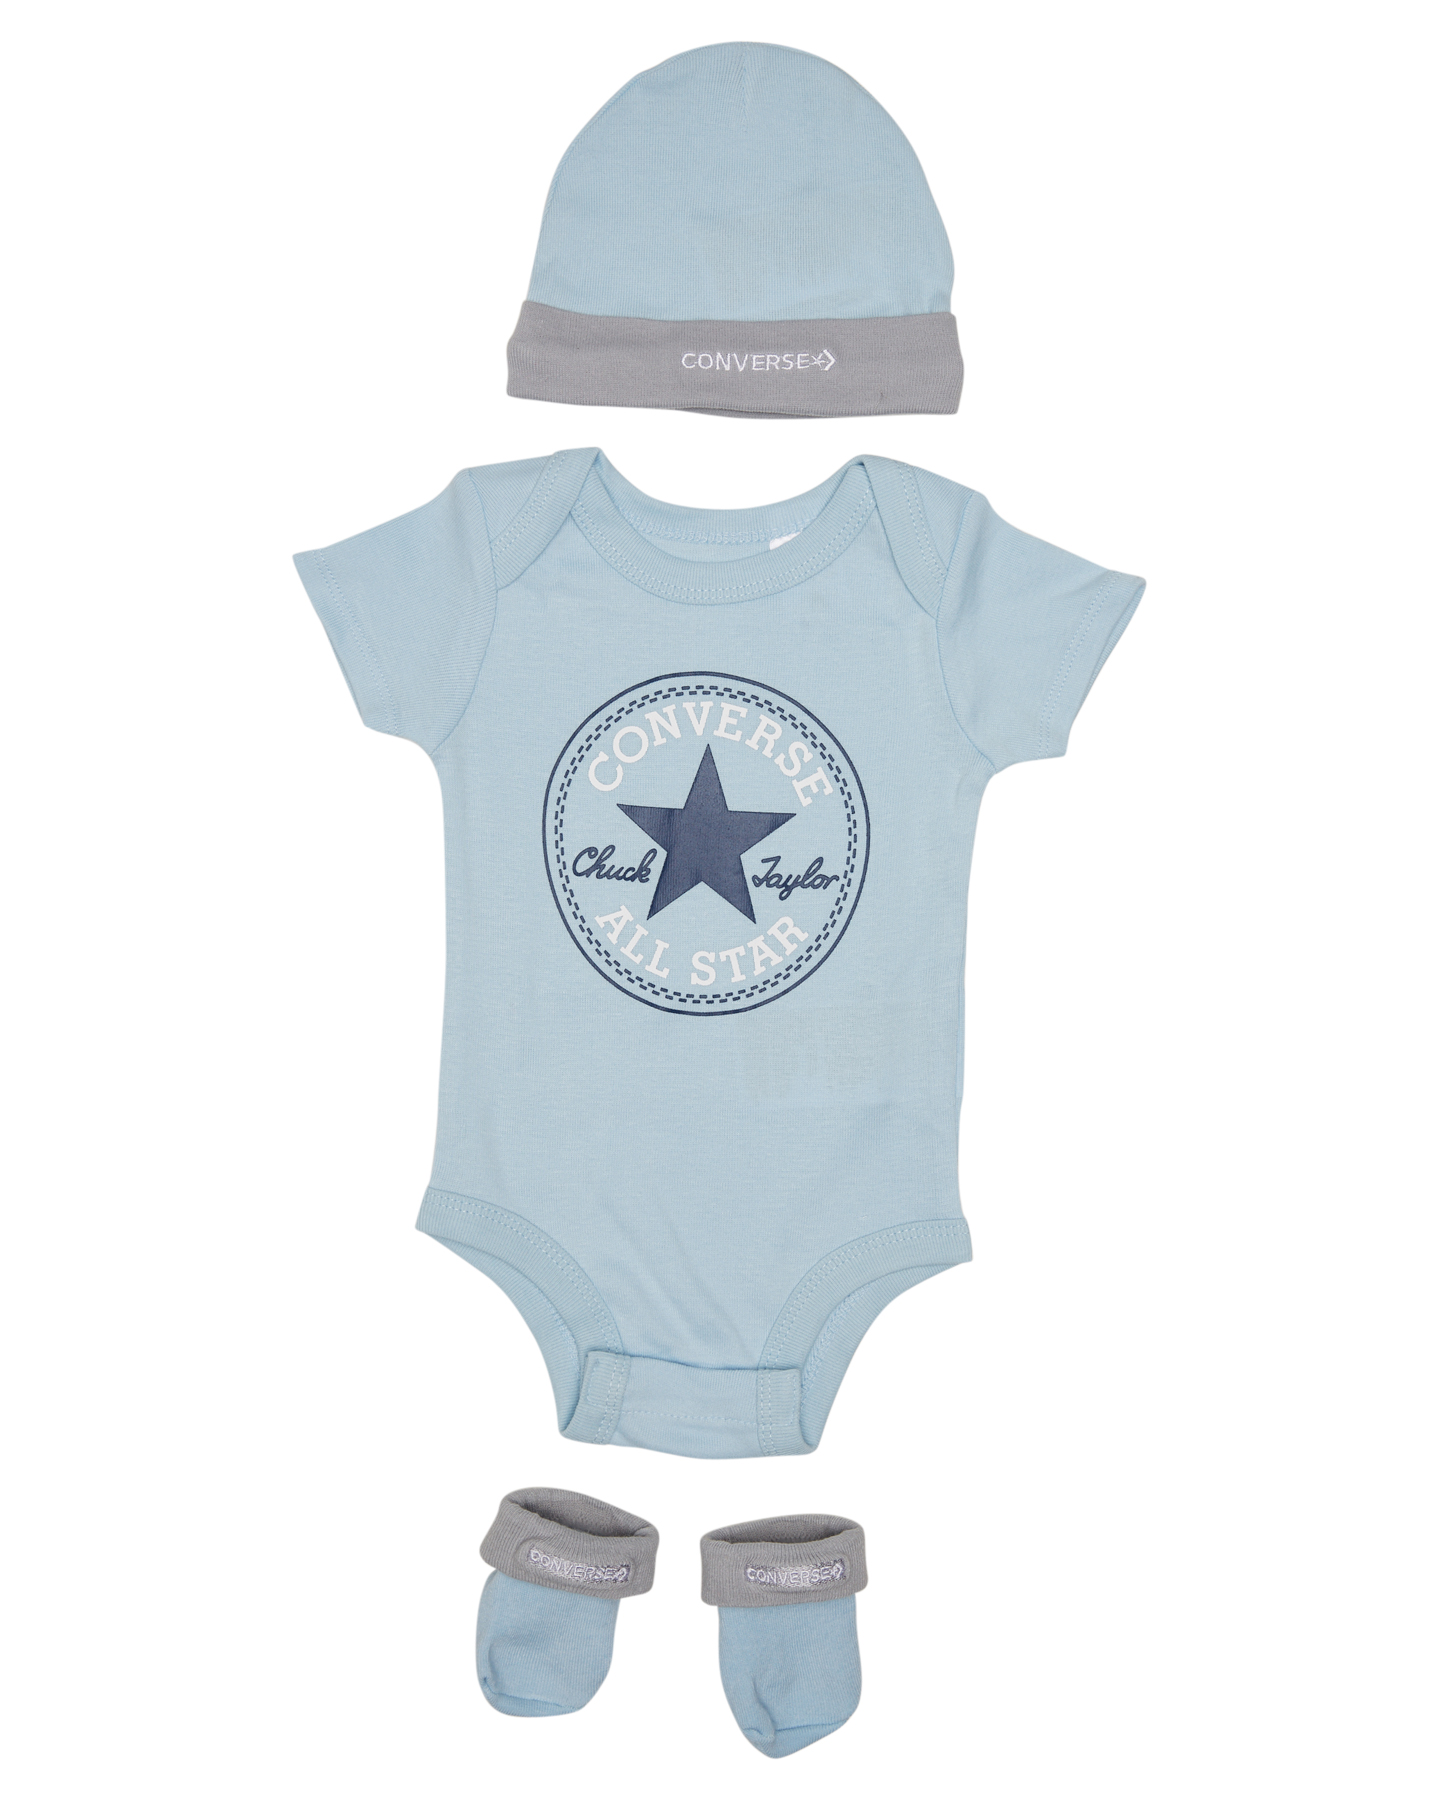 Converse Classic Ctp Hat Bodysuit Bootie 3Pc Set - Baby Pacific Blue Coast